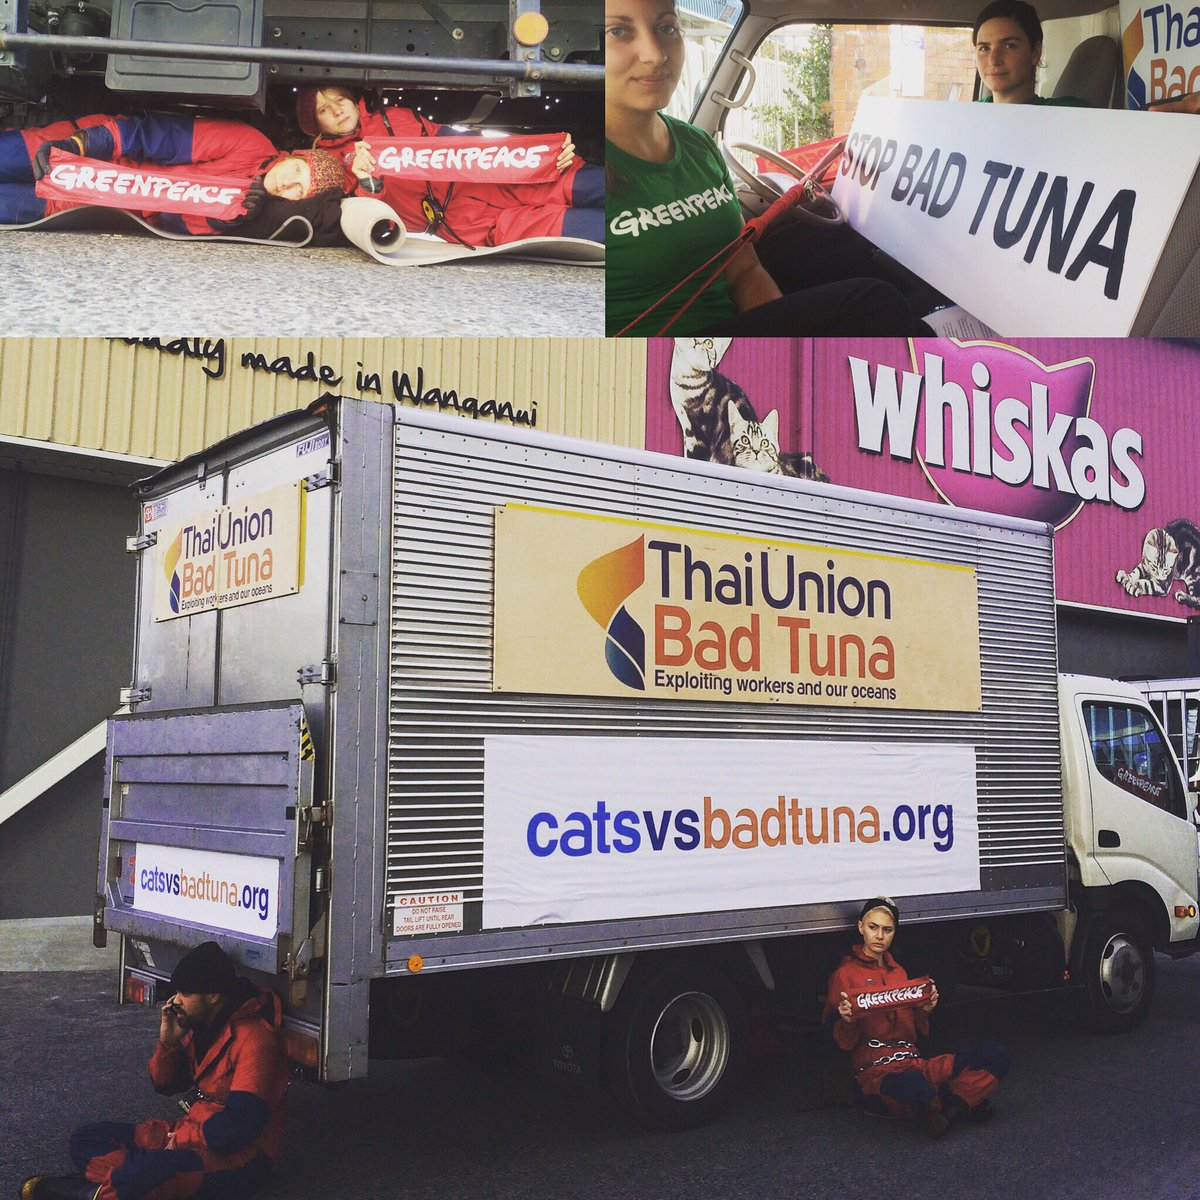 Locked in, under and around our Thai Union #BadTuna truck. People deserve to know where their cat food comes from! https://t.co/HKoDpOjz5Q